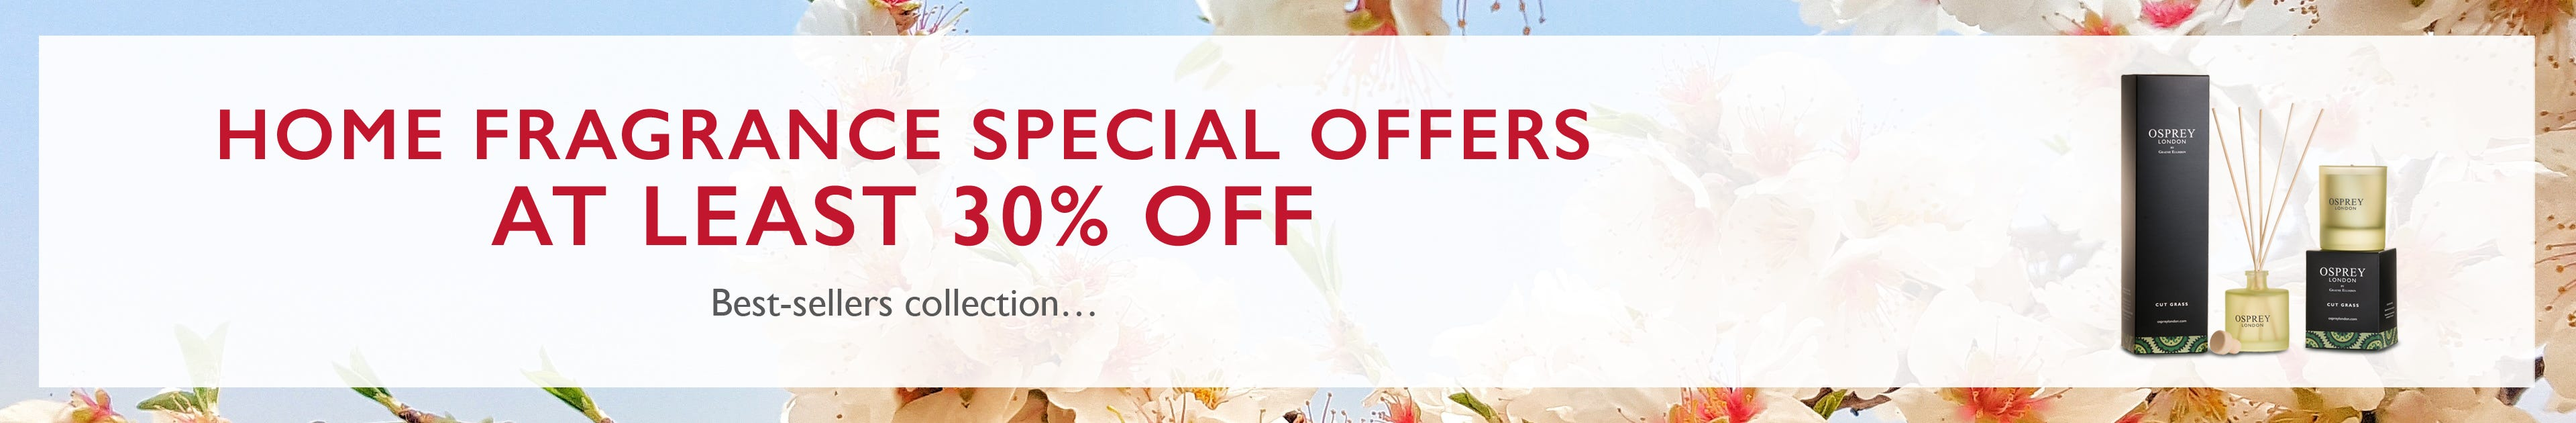 Home Fragrance Special Offers